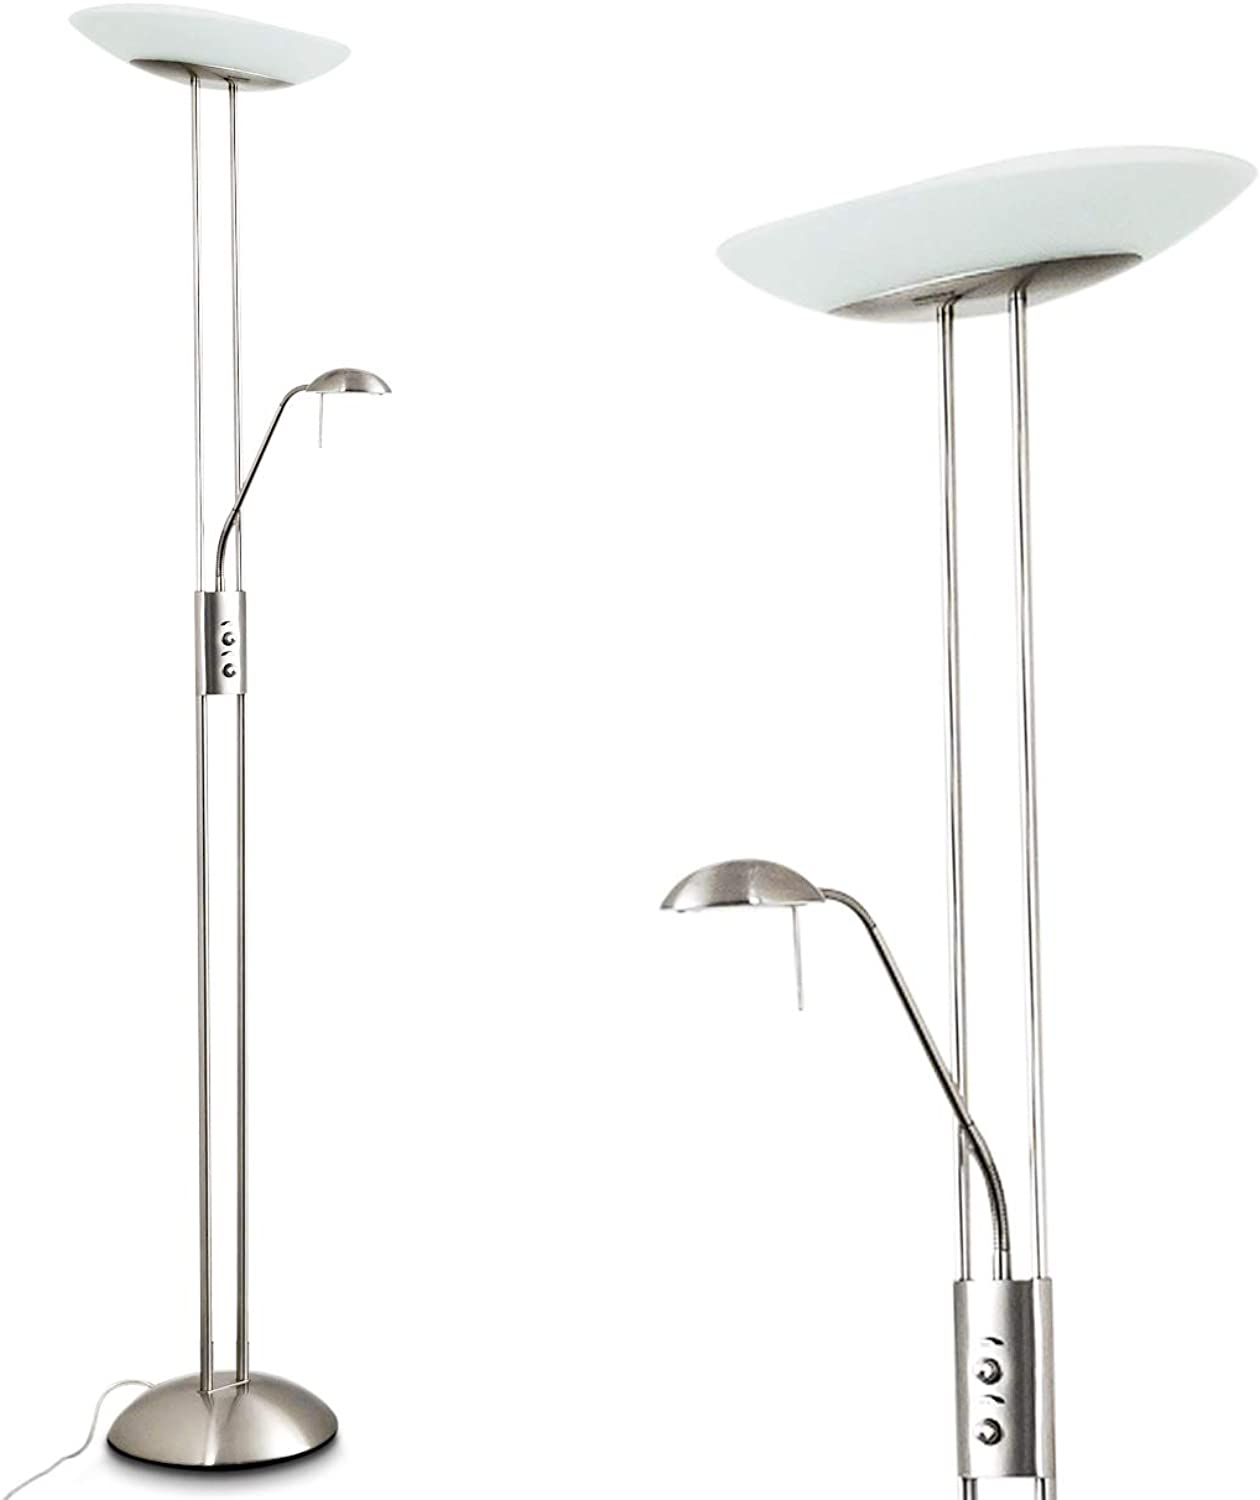 Dimmbare Stehlampe